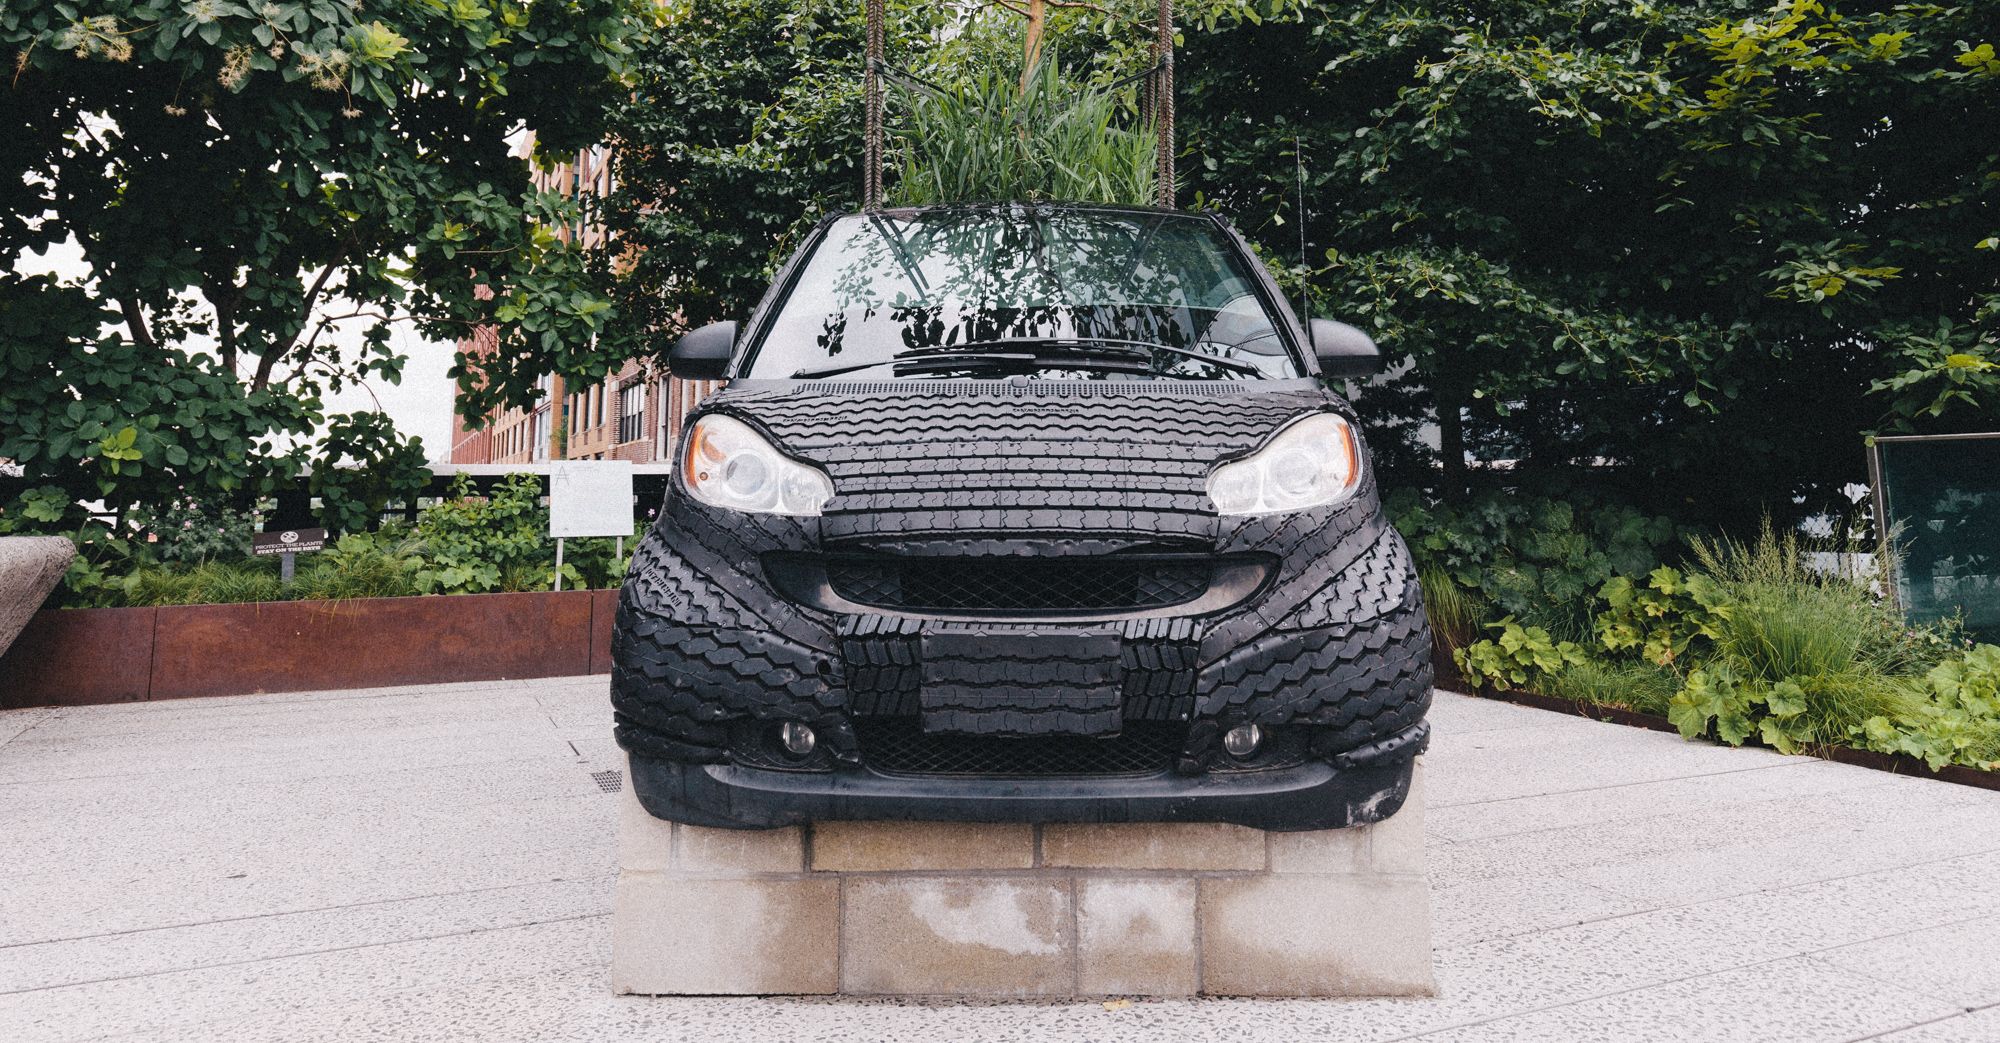 What Is Rubber Made Of >> There S A Smart Car Made Of Rubber On The High Line Doobybrain Com